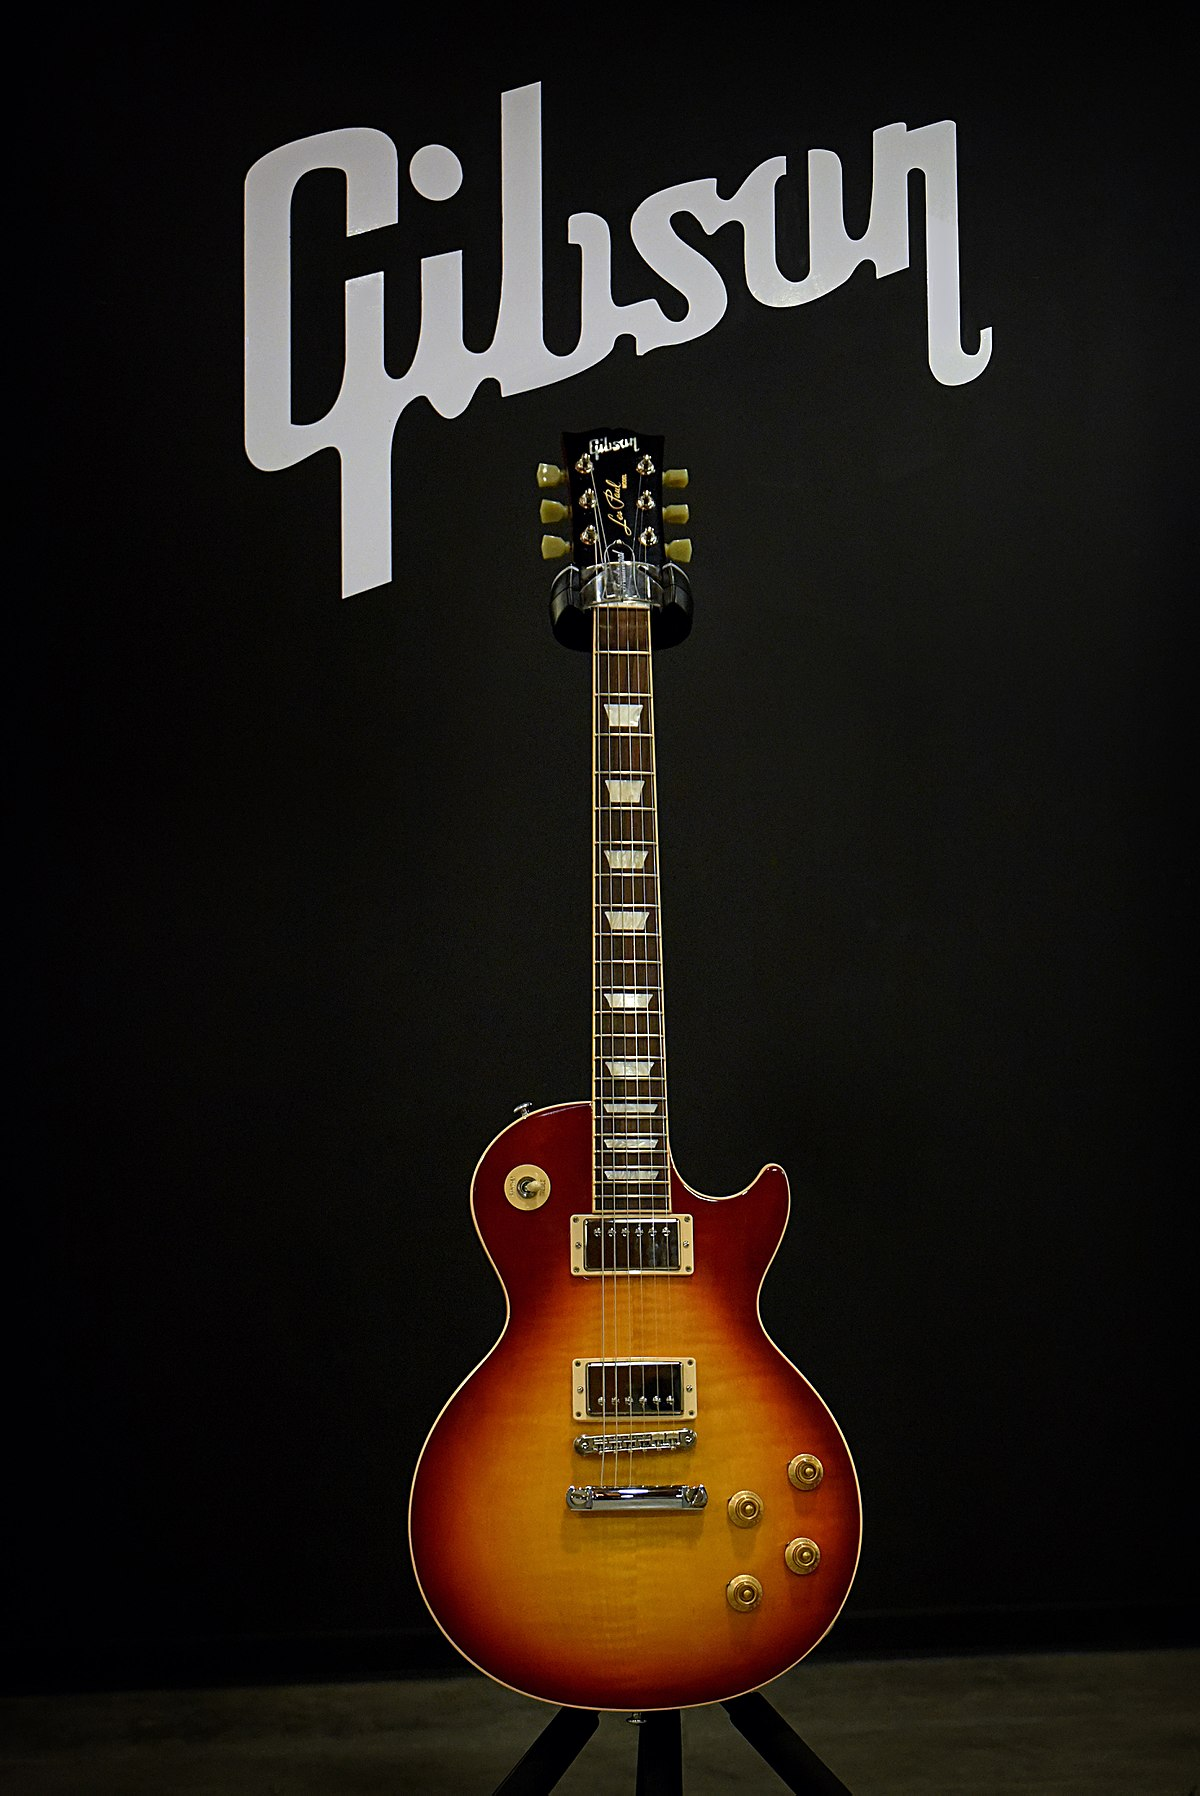 1200px-Gibson_Logo_and_Guitar.jpg